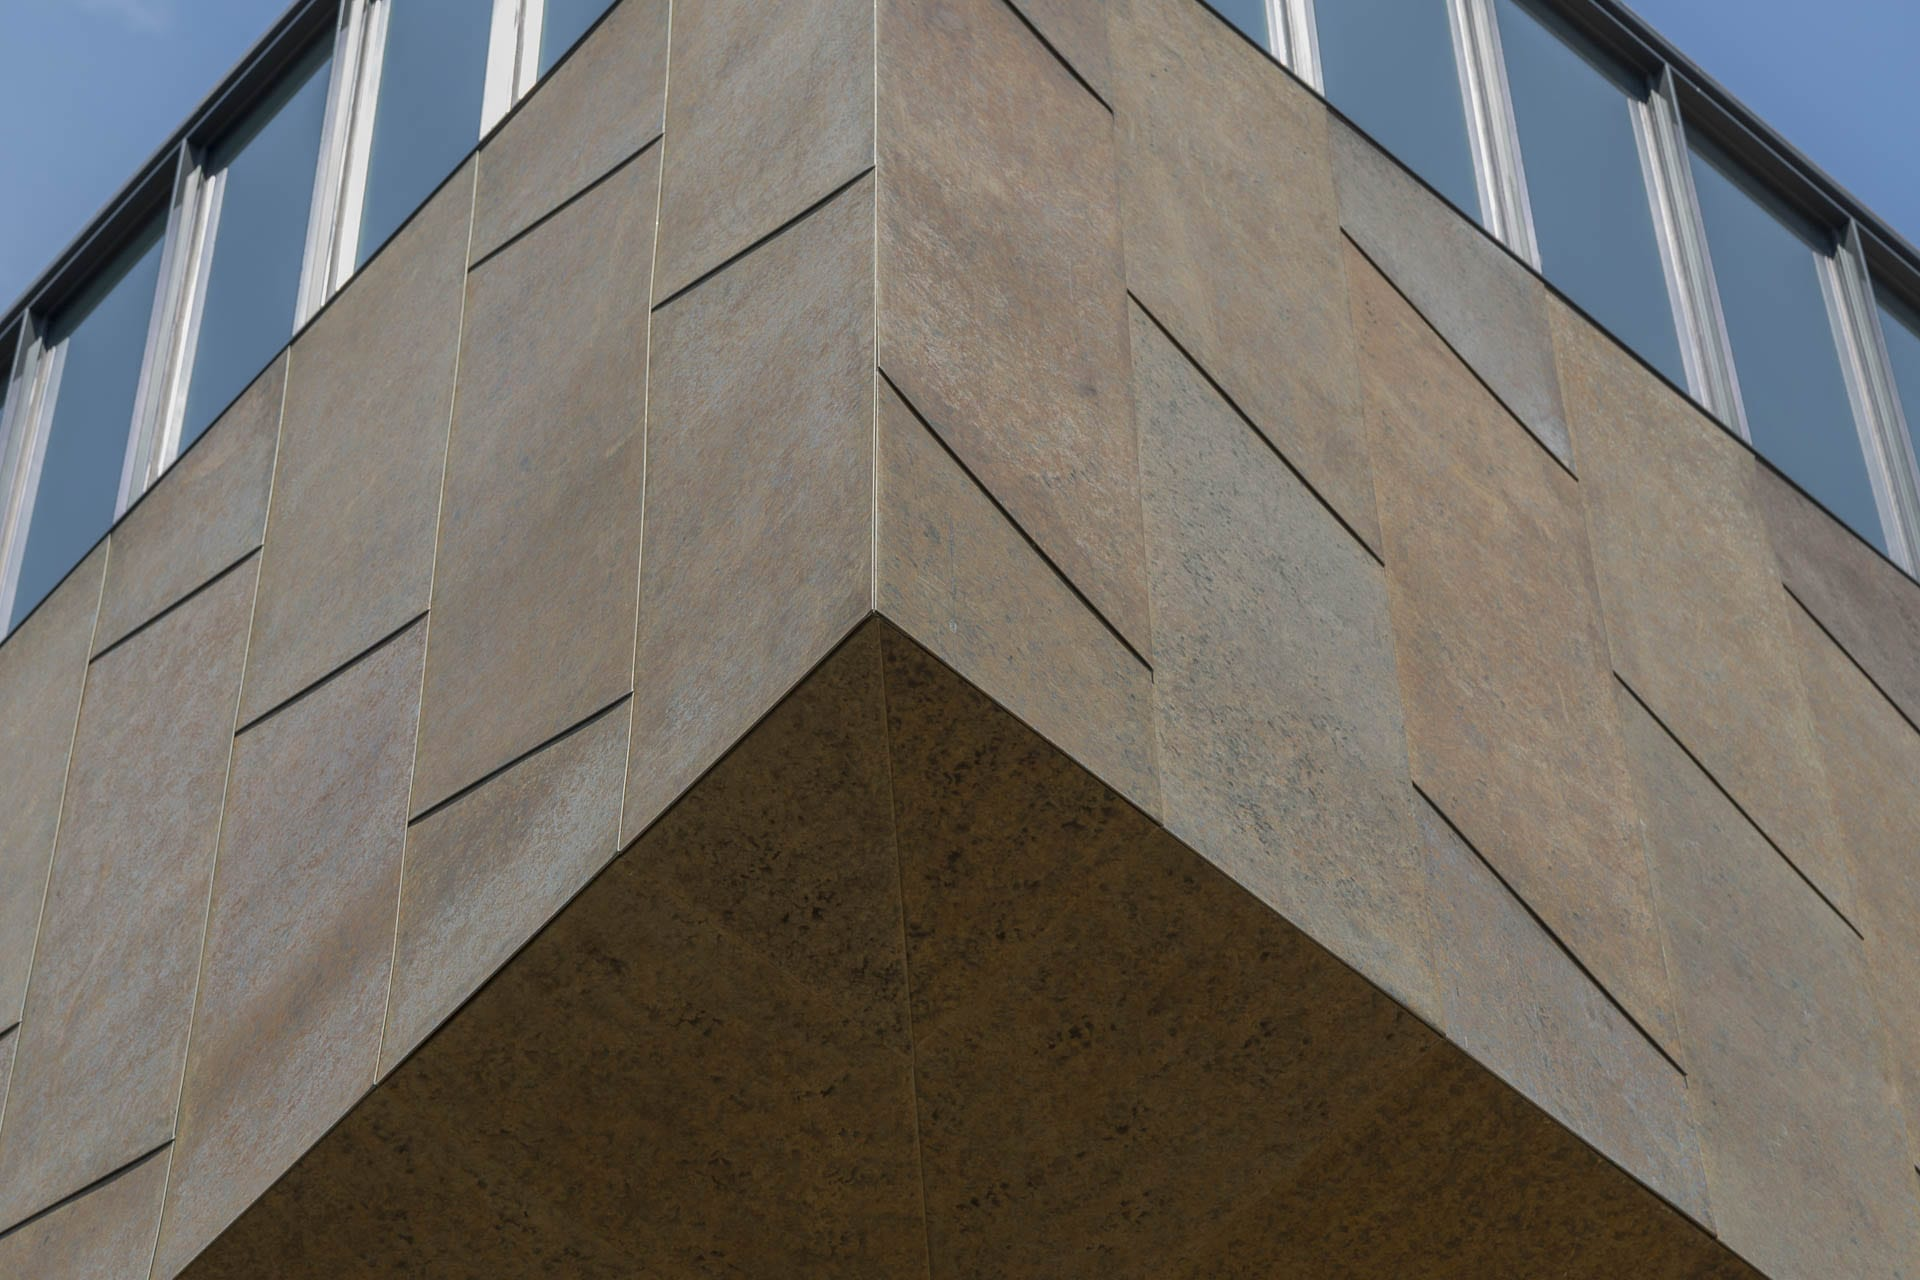 Detail of the custom zinc ceiling corner and facade for the McMurtry Building in Stanford, California.